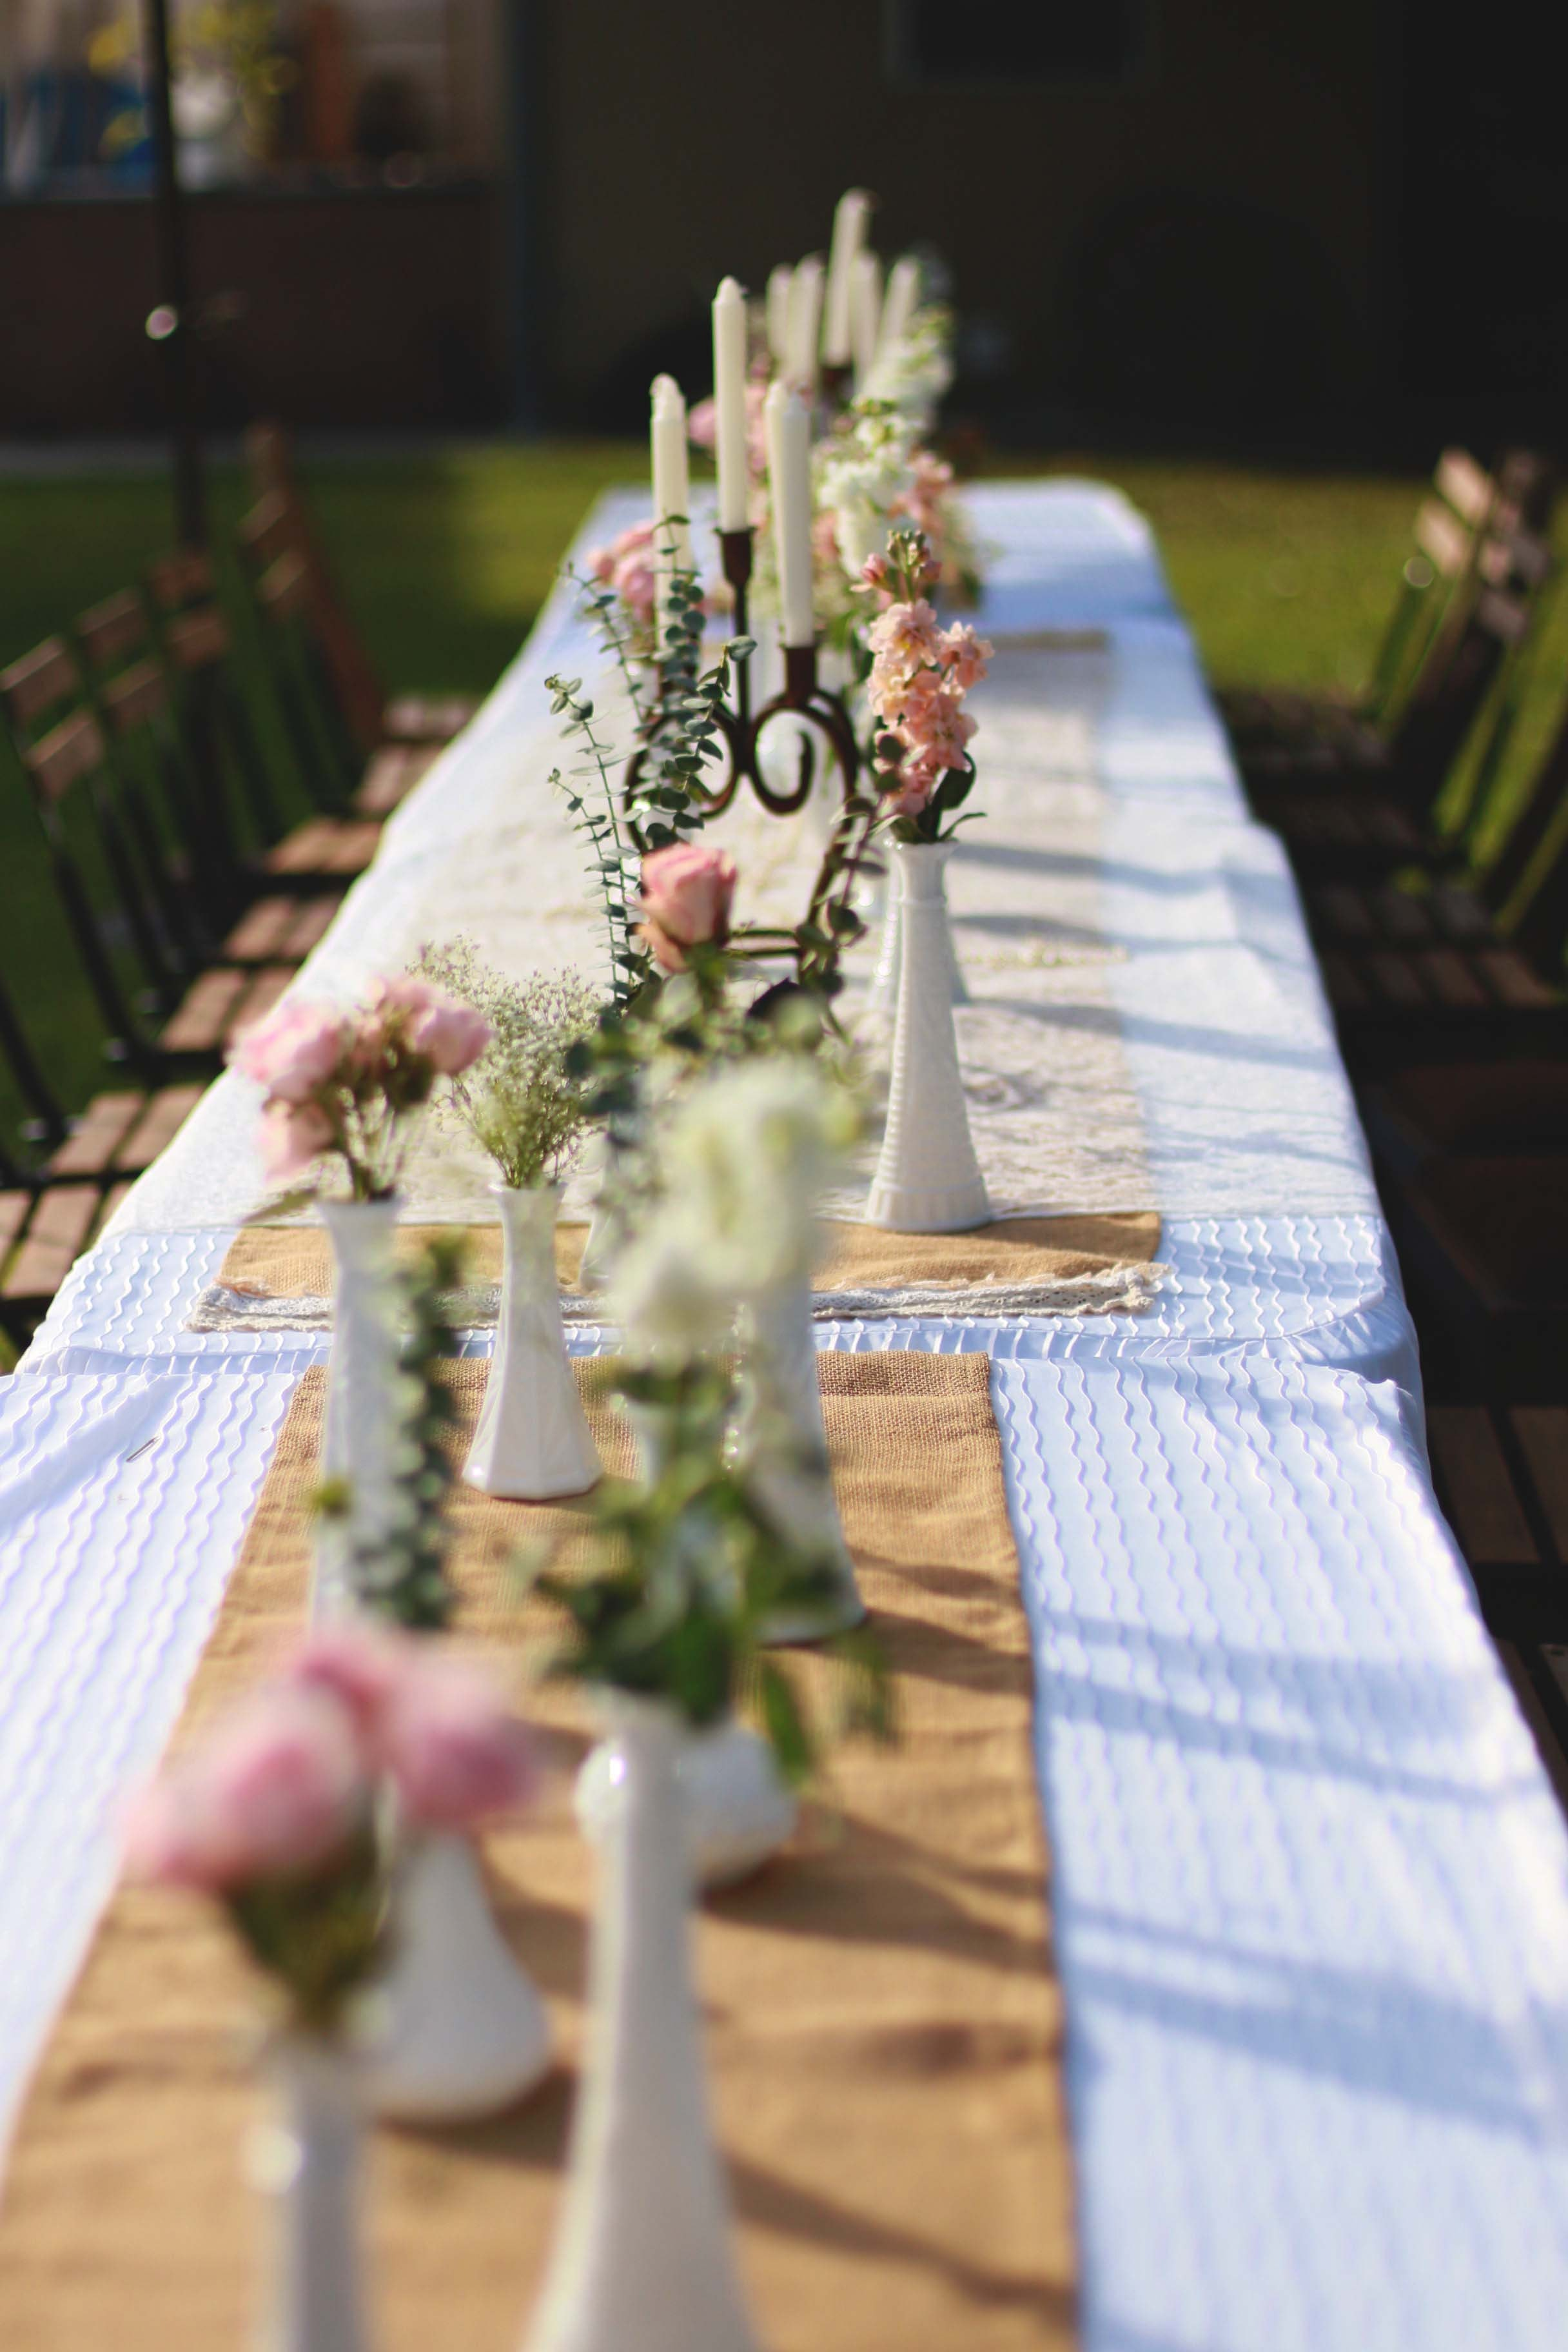 tablecloth rentals. what to do with your damaged rental linens. blog.goodshuffle.com. https://pro.goodshuffle.com